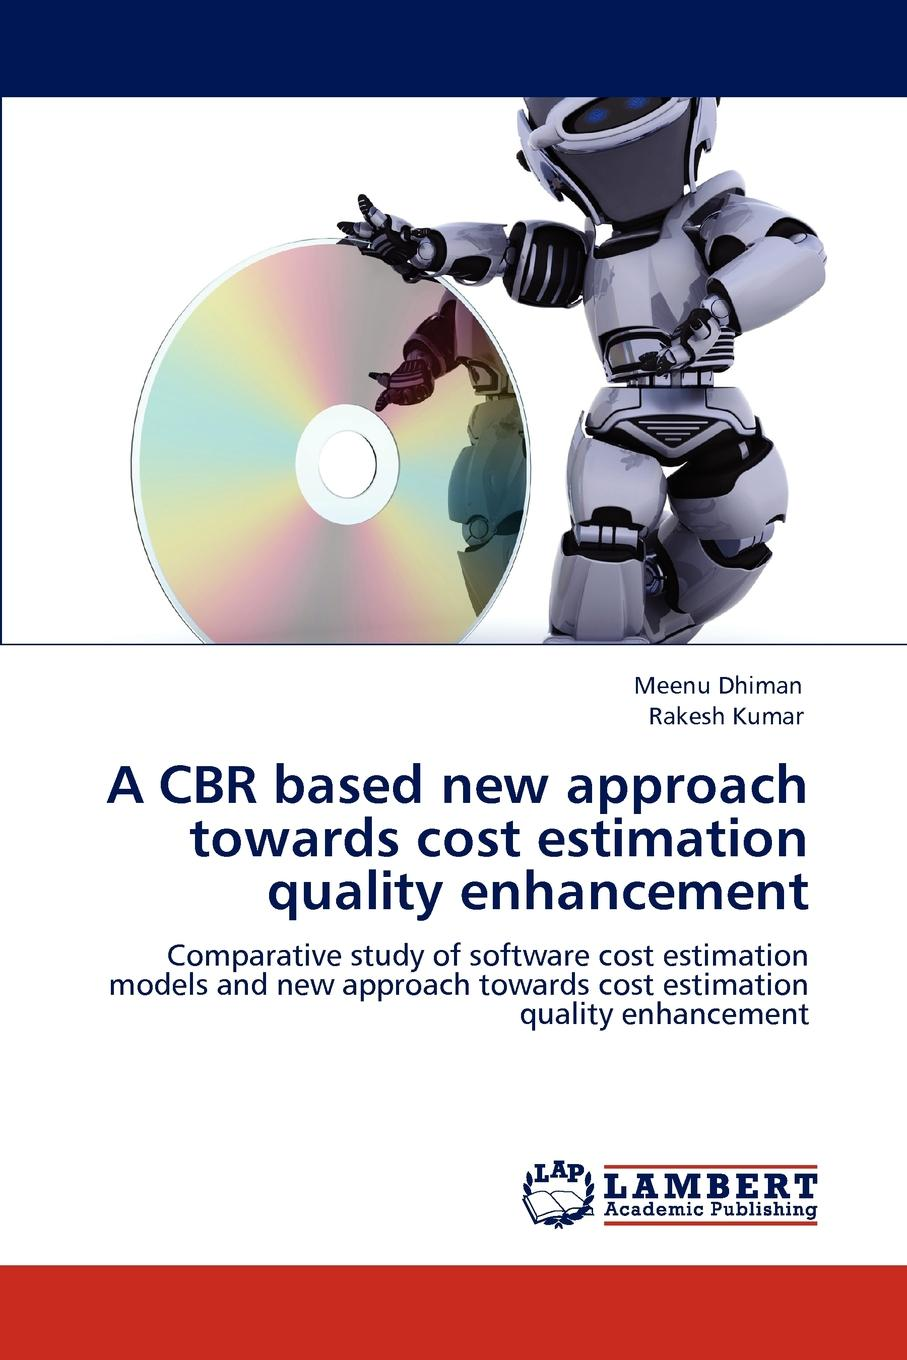 лучшая цена Meenu Dhiman, Rakesh Kumar A CBR based new approach towards cost estimation quality enhancement